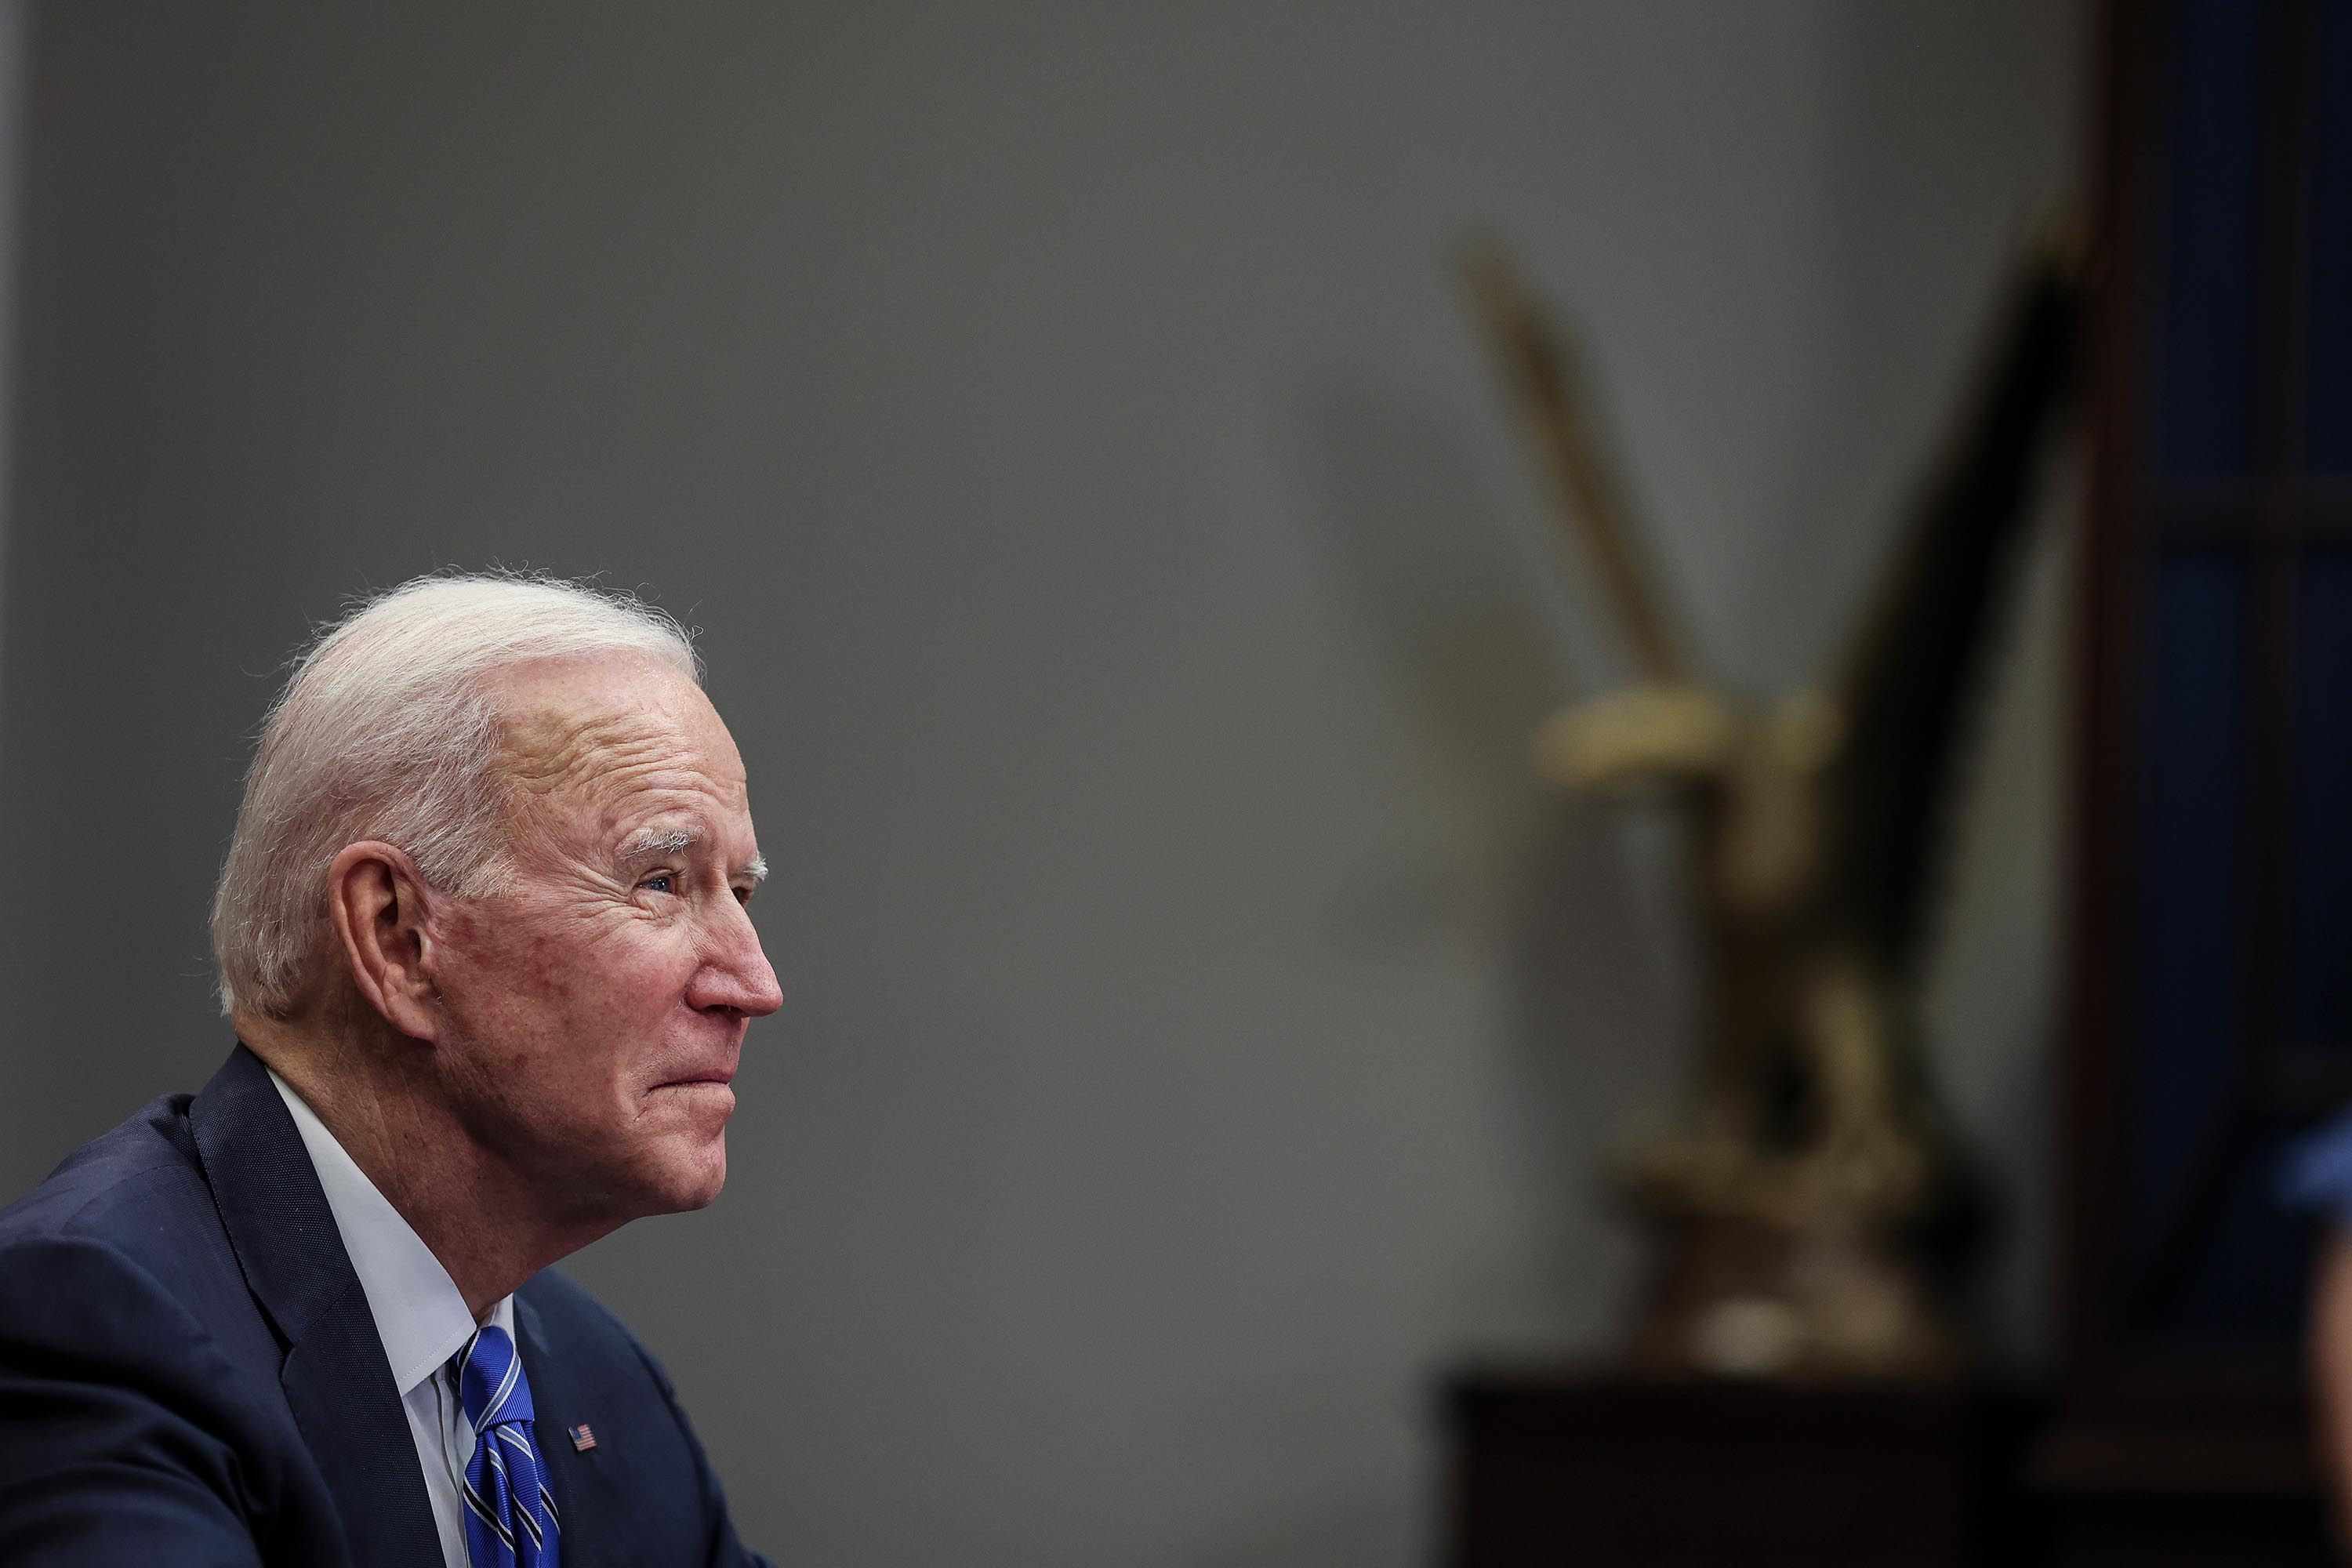 Biden's walk-back appears to put infrastructure back on rails, even as deal's durability is tested